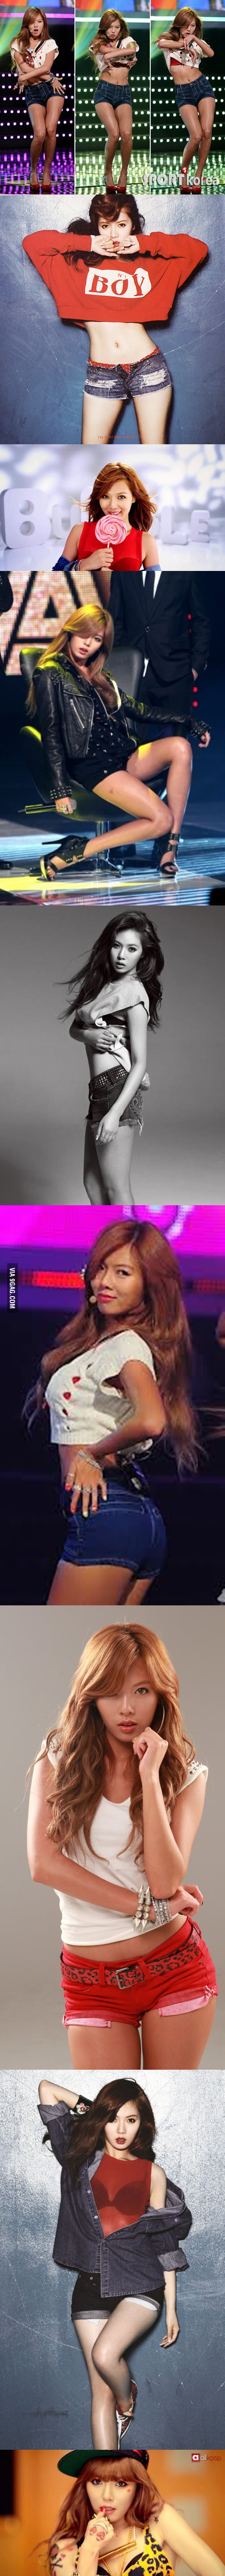 Hyuna the chick from Gangnam Style